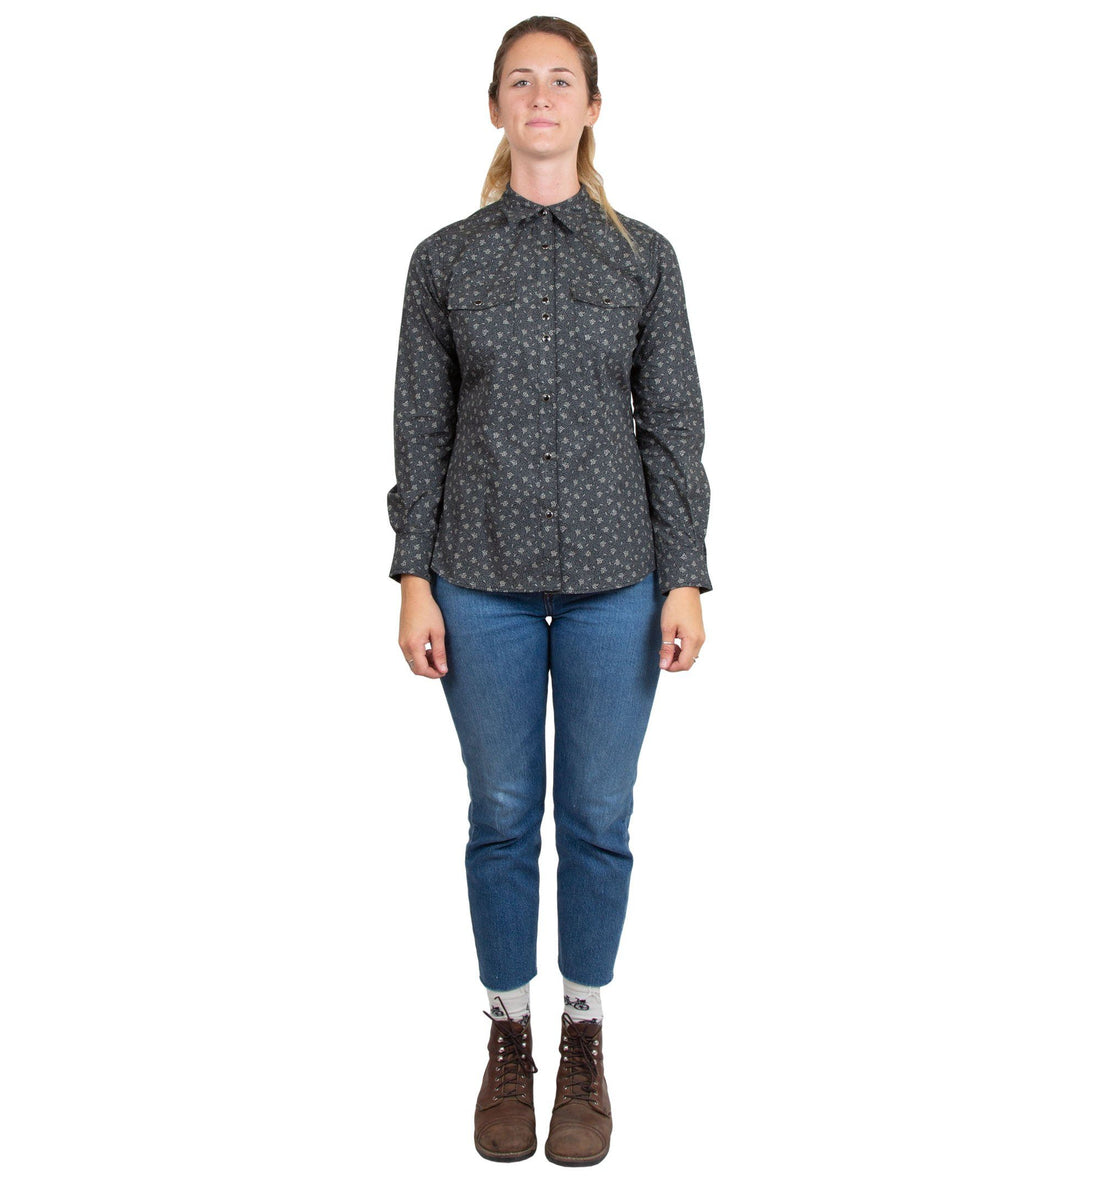 Women's Deadwood Shirt - Tops - Iron and Resin